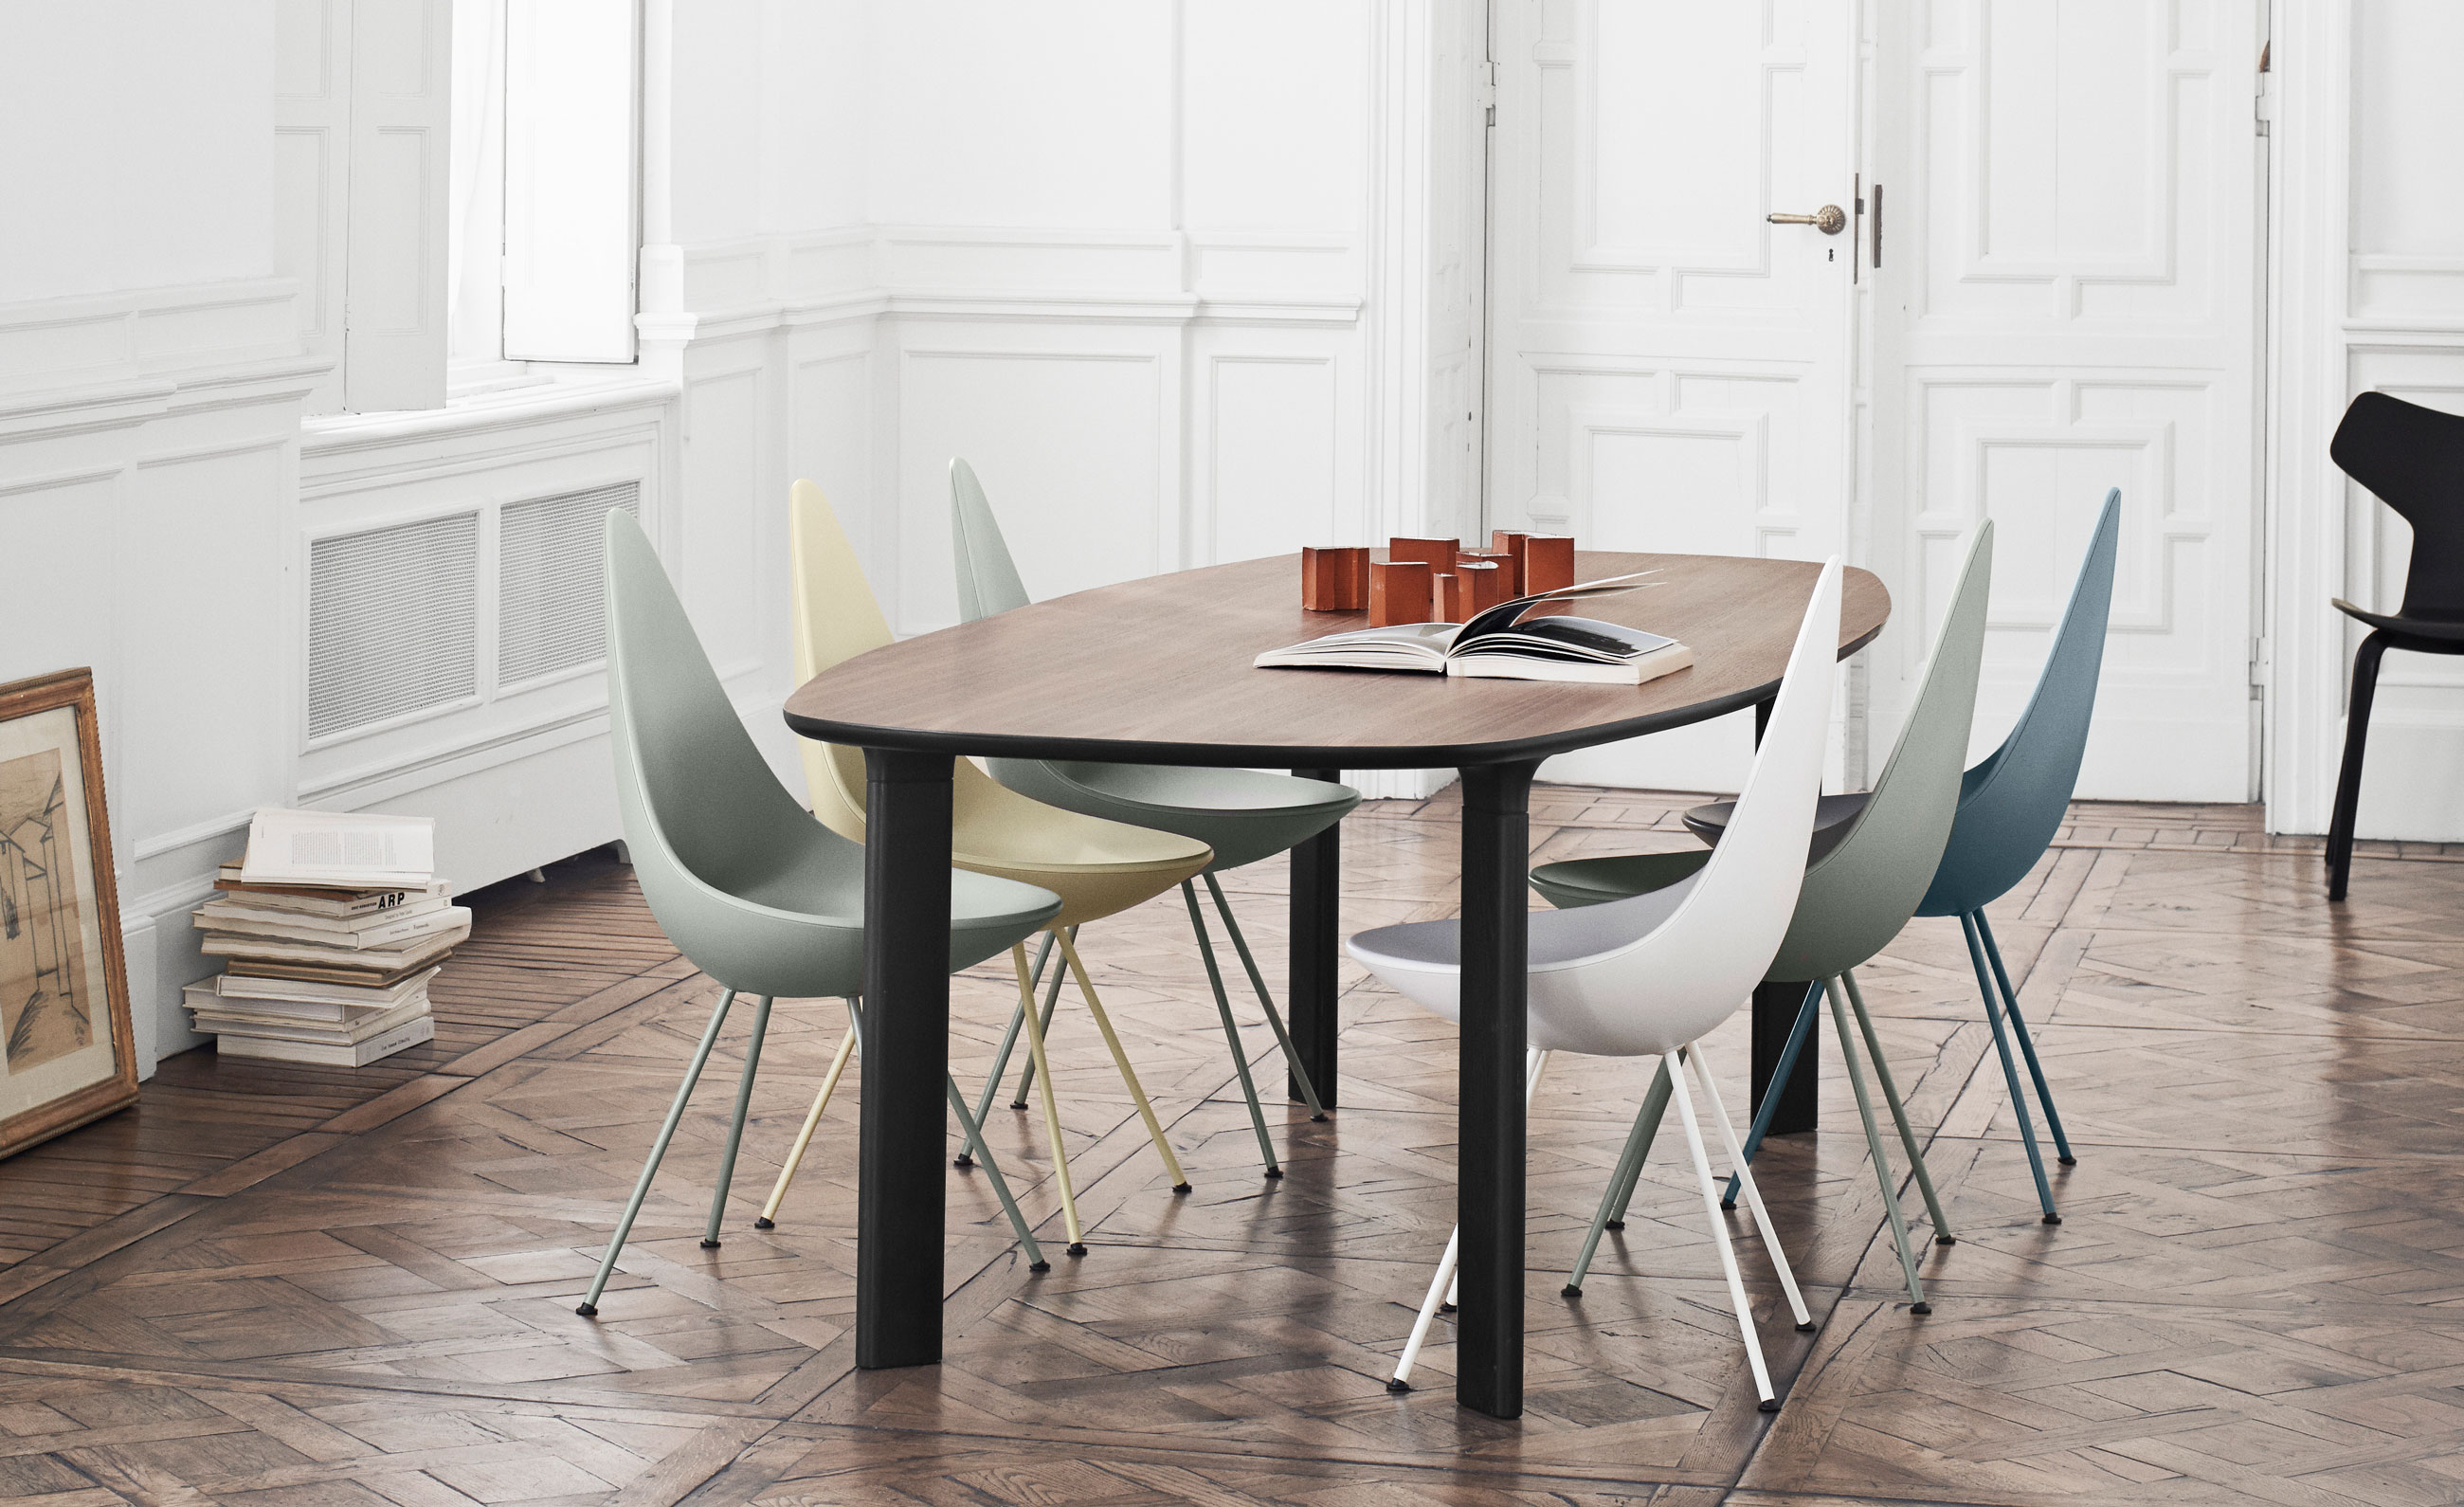 Fritz Hansen Analog Dining Table JH63 Walnut Veneer and Black Base with Drop Chairs